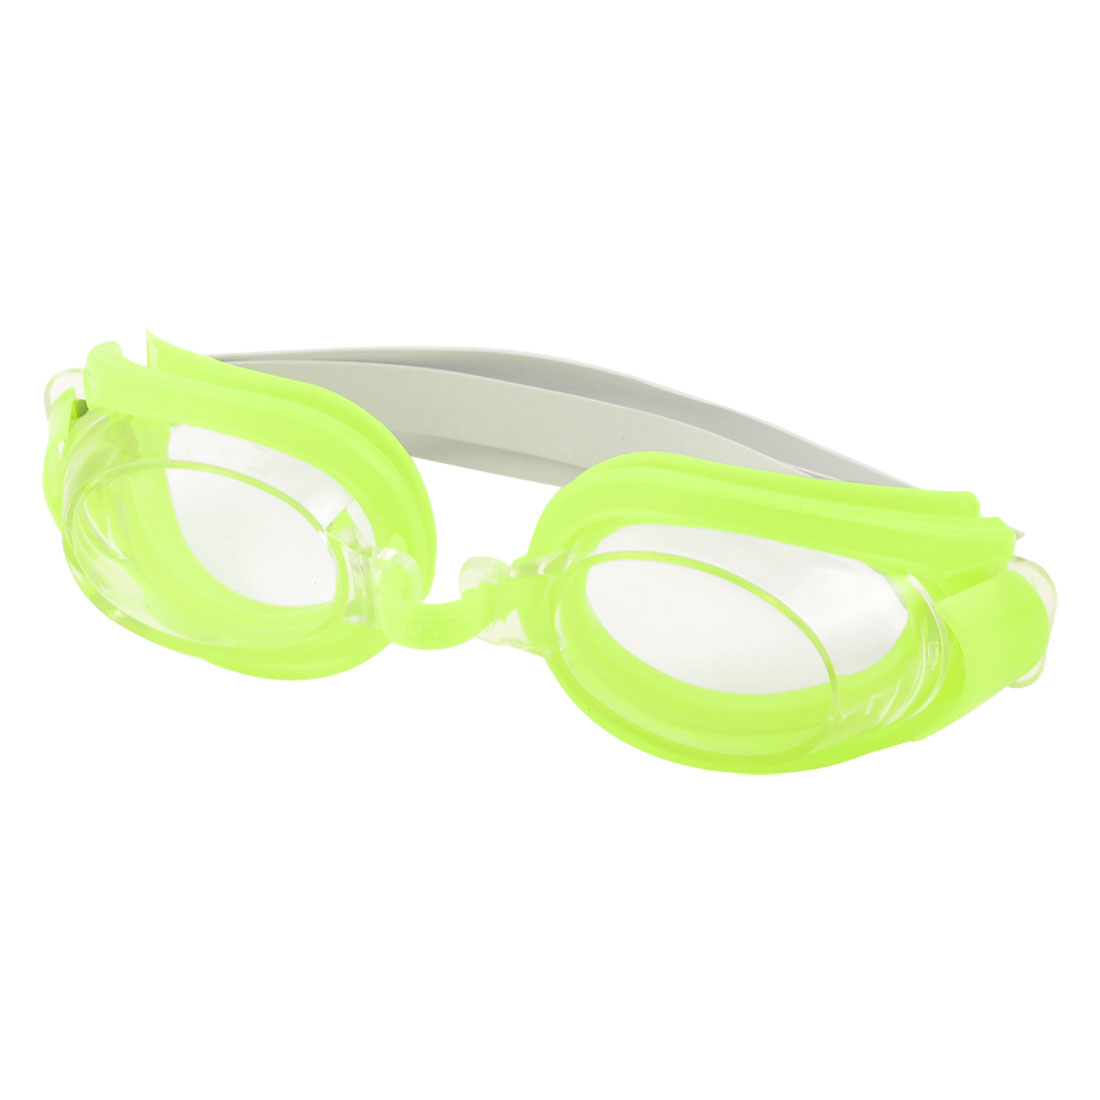 Unique Bargains Unique Bargains Adjustable Strap Underwater Eyeglasses Swim Goggles w Earplugs For Children by